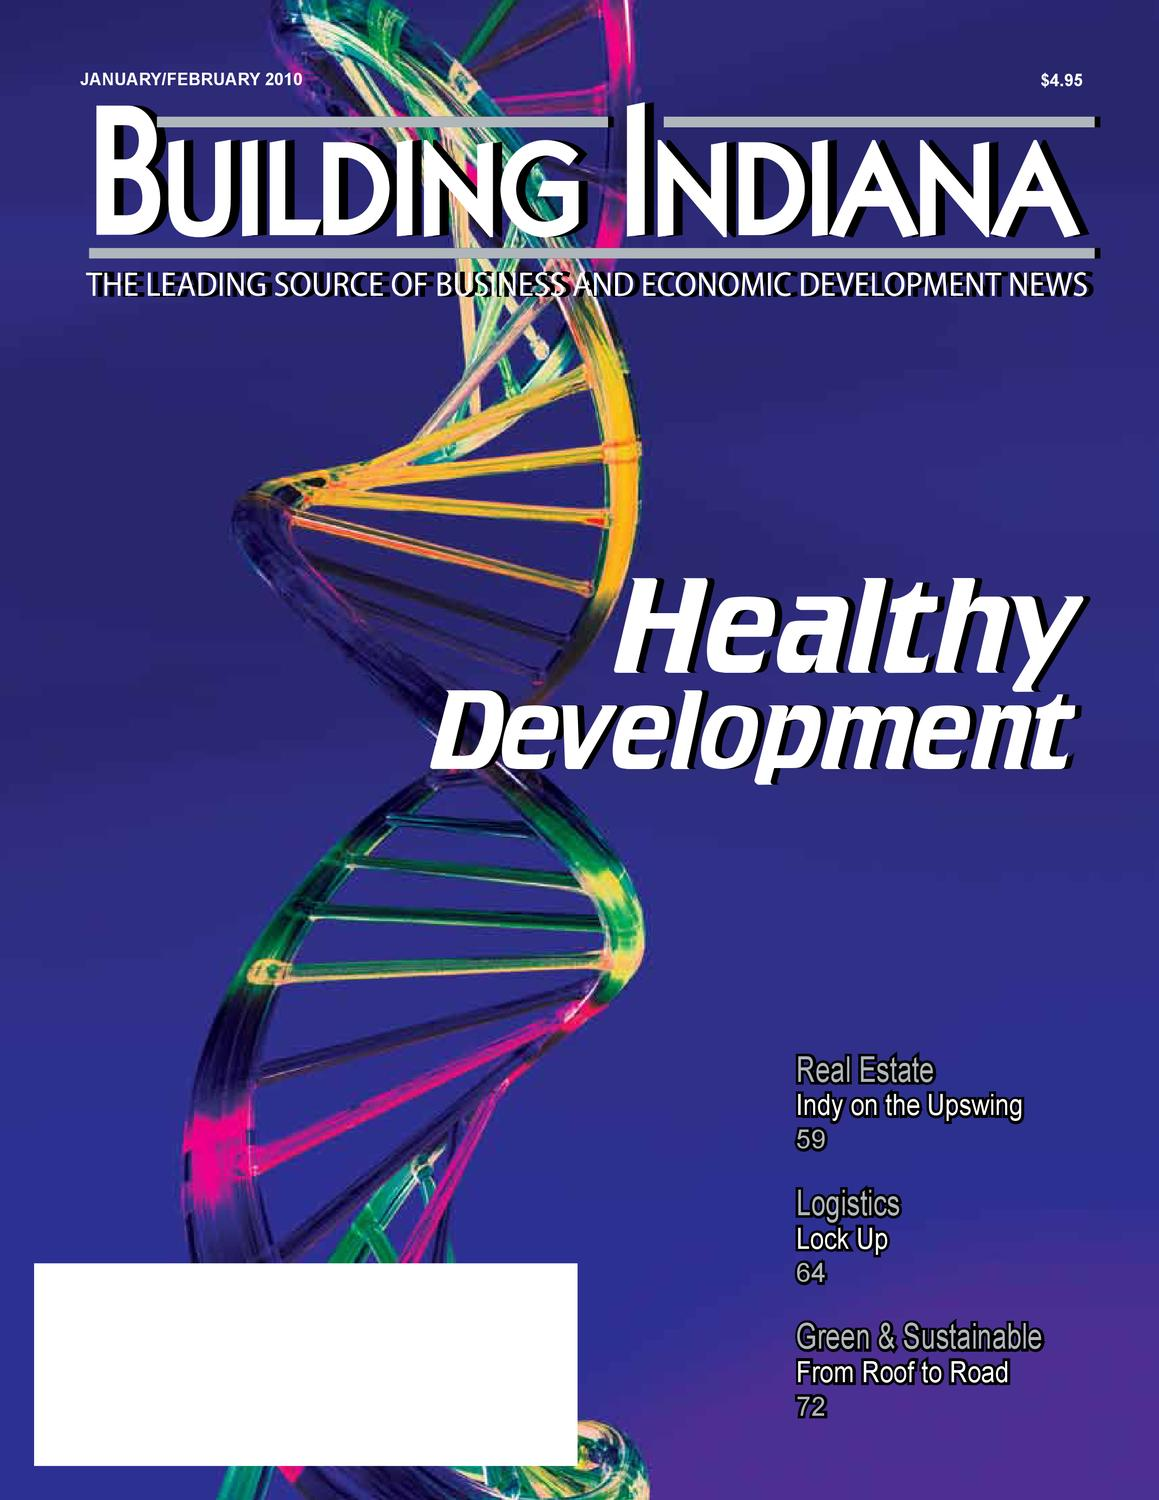 Building Indiana: January/February 2010 by Building Indiana News - issuu